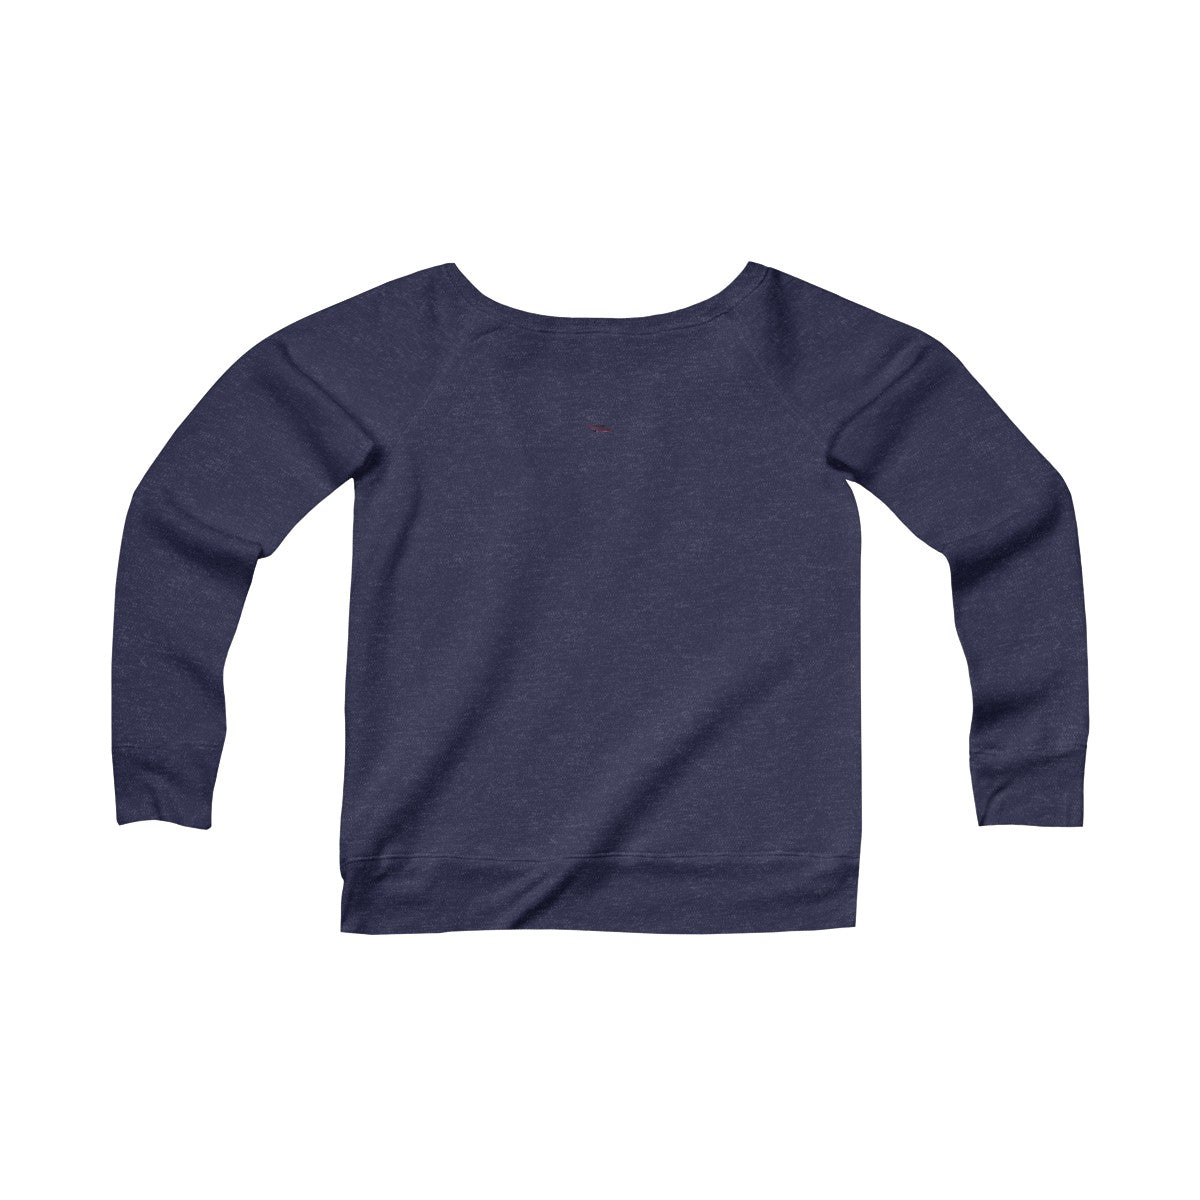 Women's Sponge Fleece Wide Neck Sweatshirt